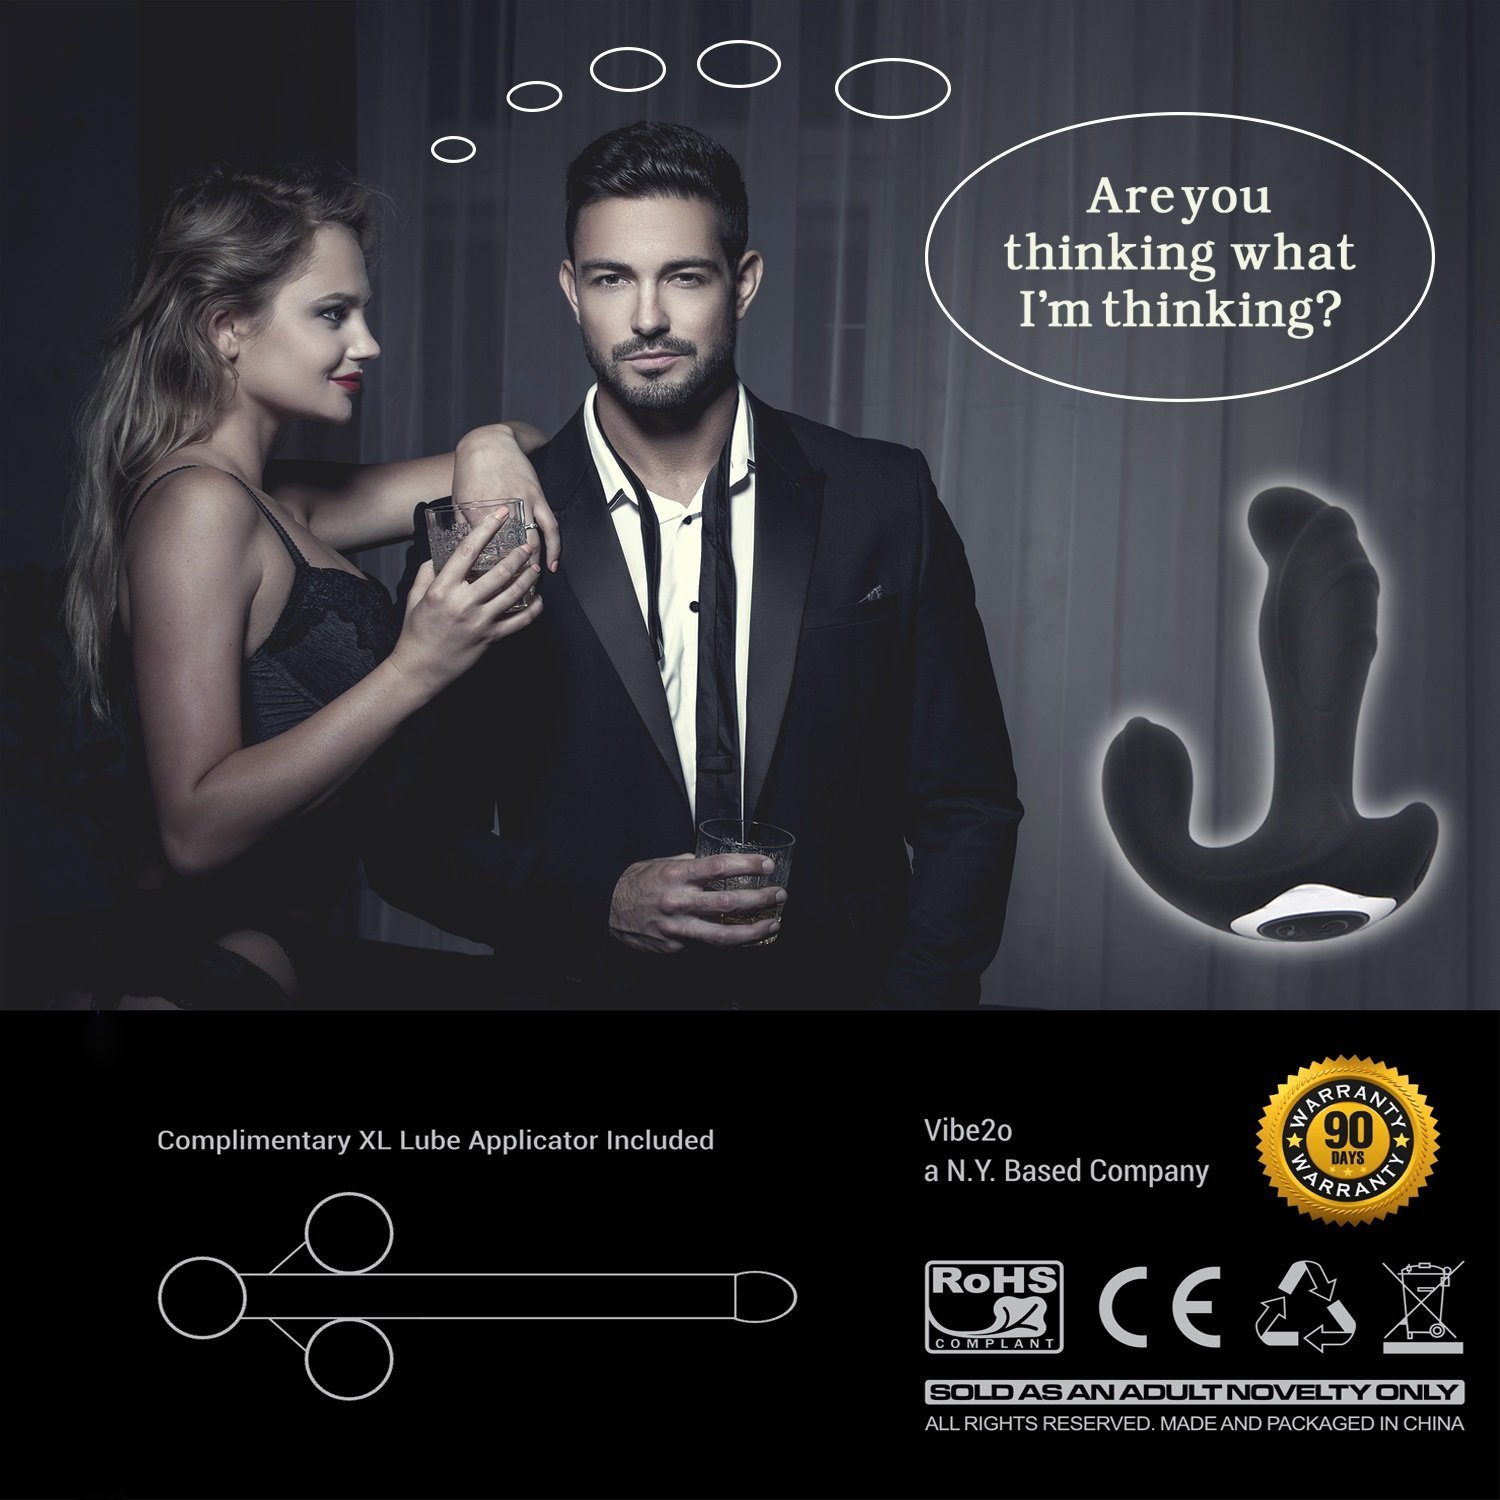 Diablo Strong Dual Motor Prostate Massager for Men 10 Speed Anal Sex Toy Personal G-Spot Vibrator for Women Rechargeable Waterproof Silicone Butt Plug for Men & Women w/ FREE Lube Launcher! by Vibe2o